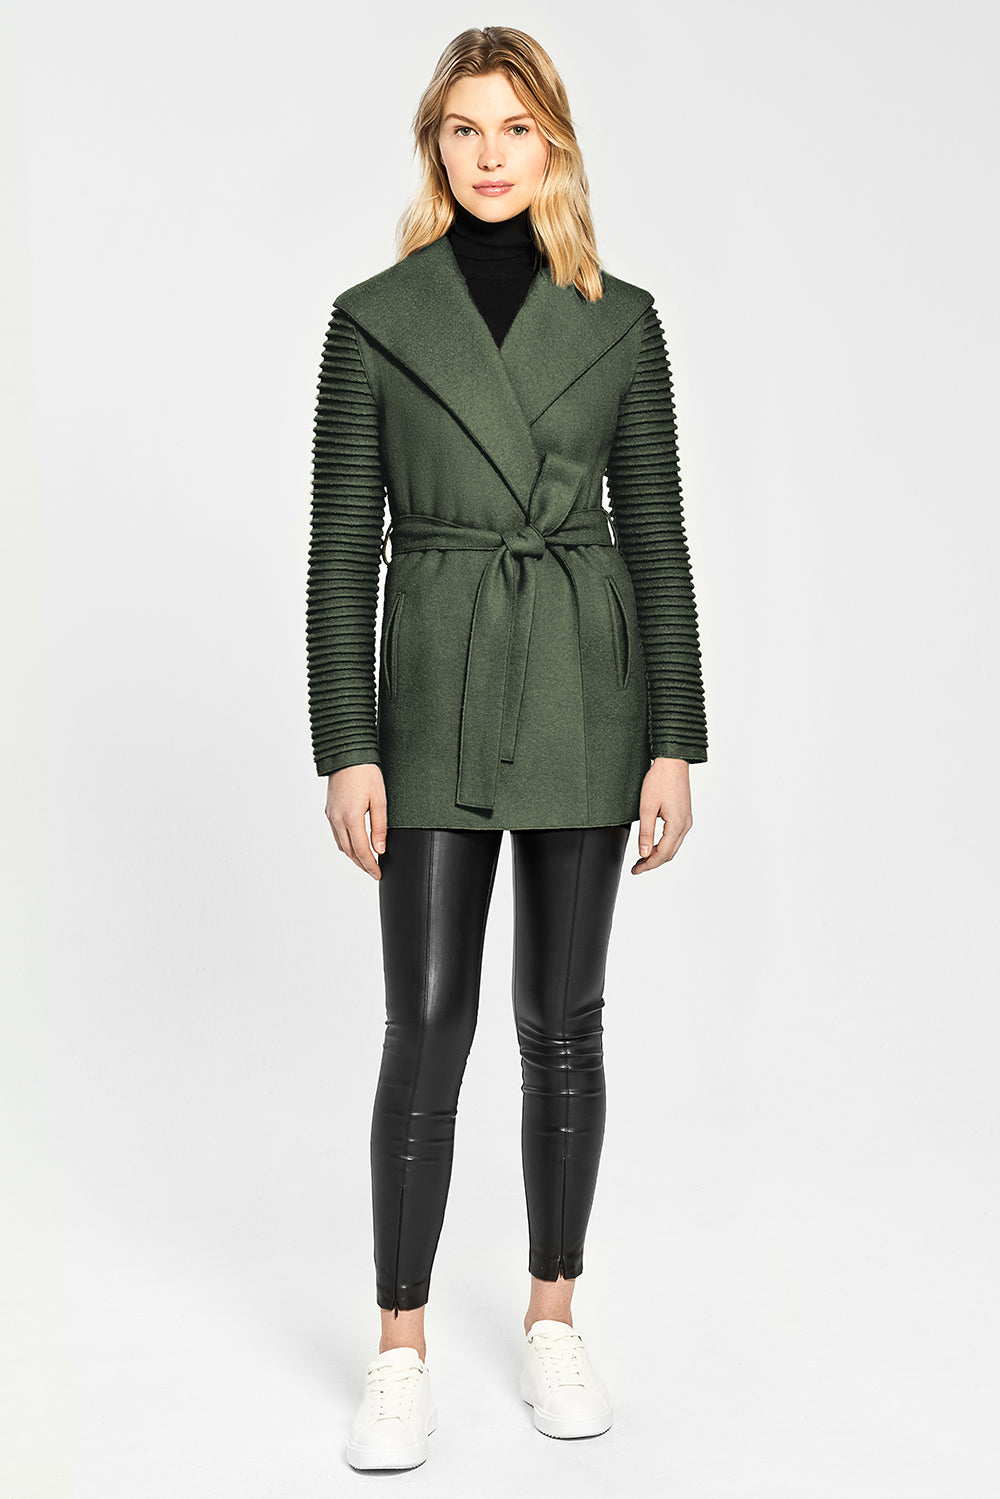 Sentaler Wrap Coat with Ribbed Sleeves featured in Superfine Alpaca and available in Army Green. Seen from Front.